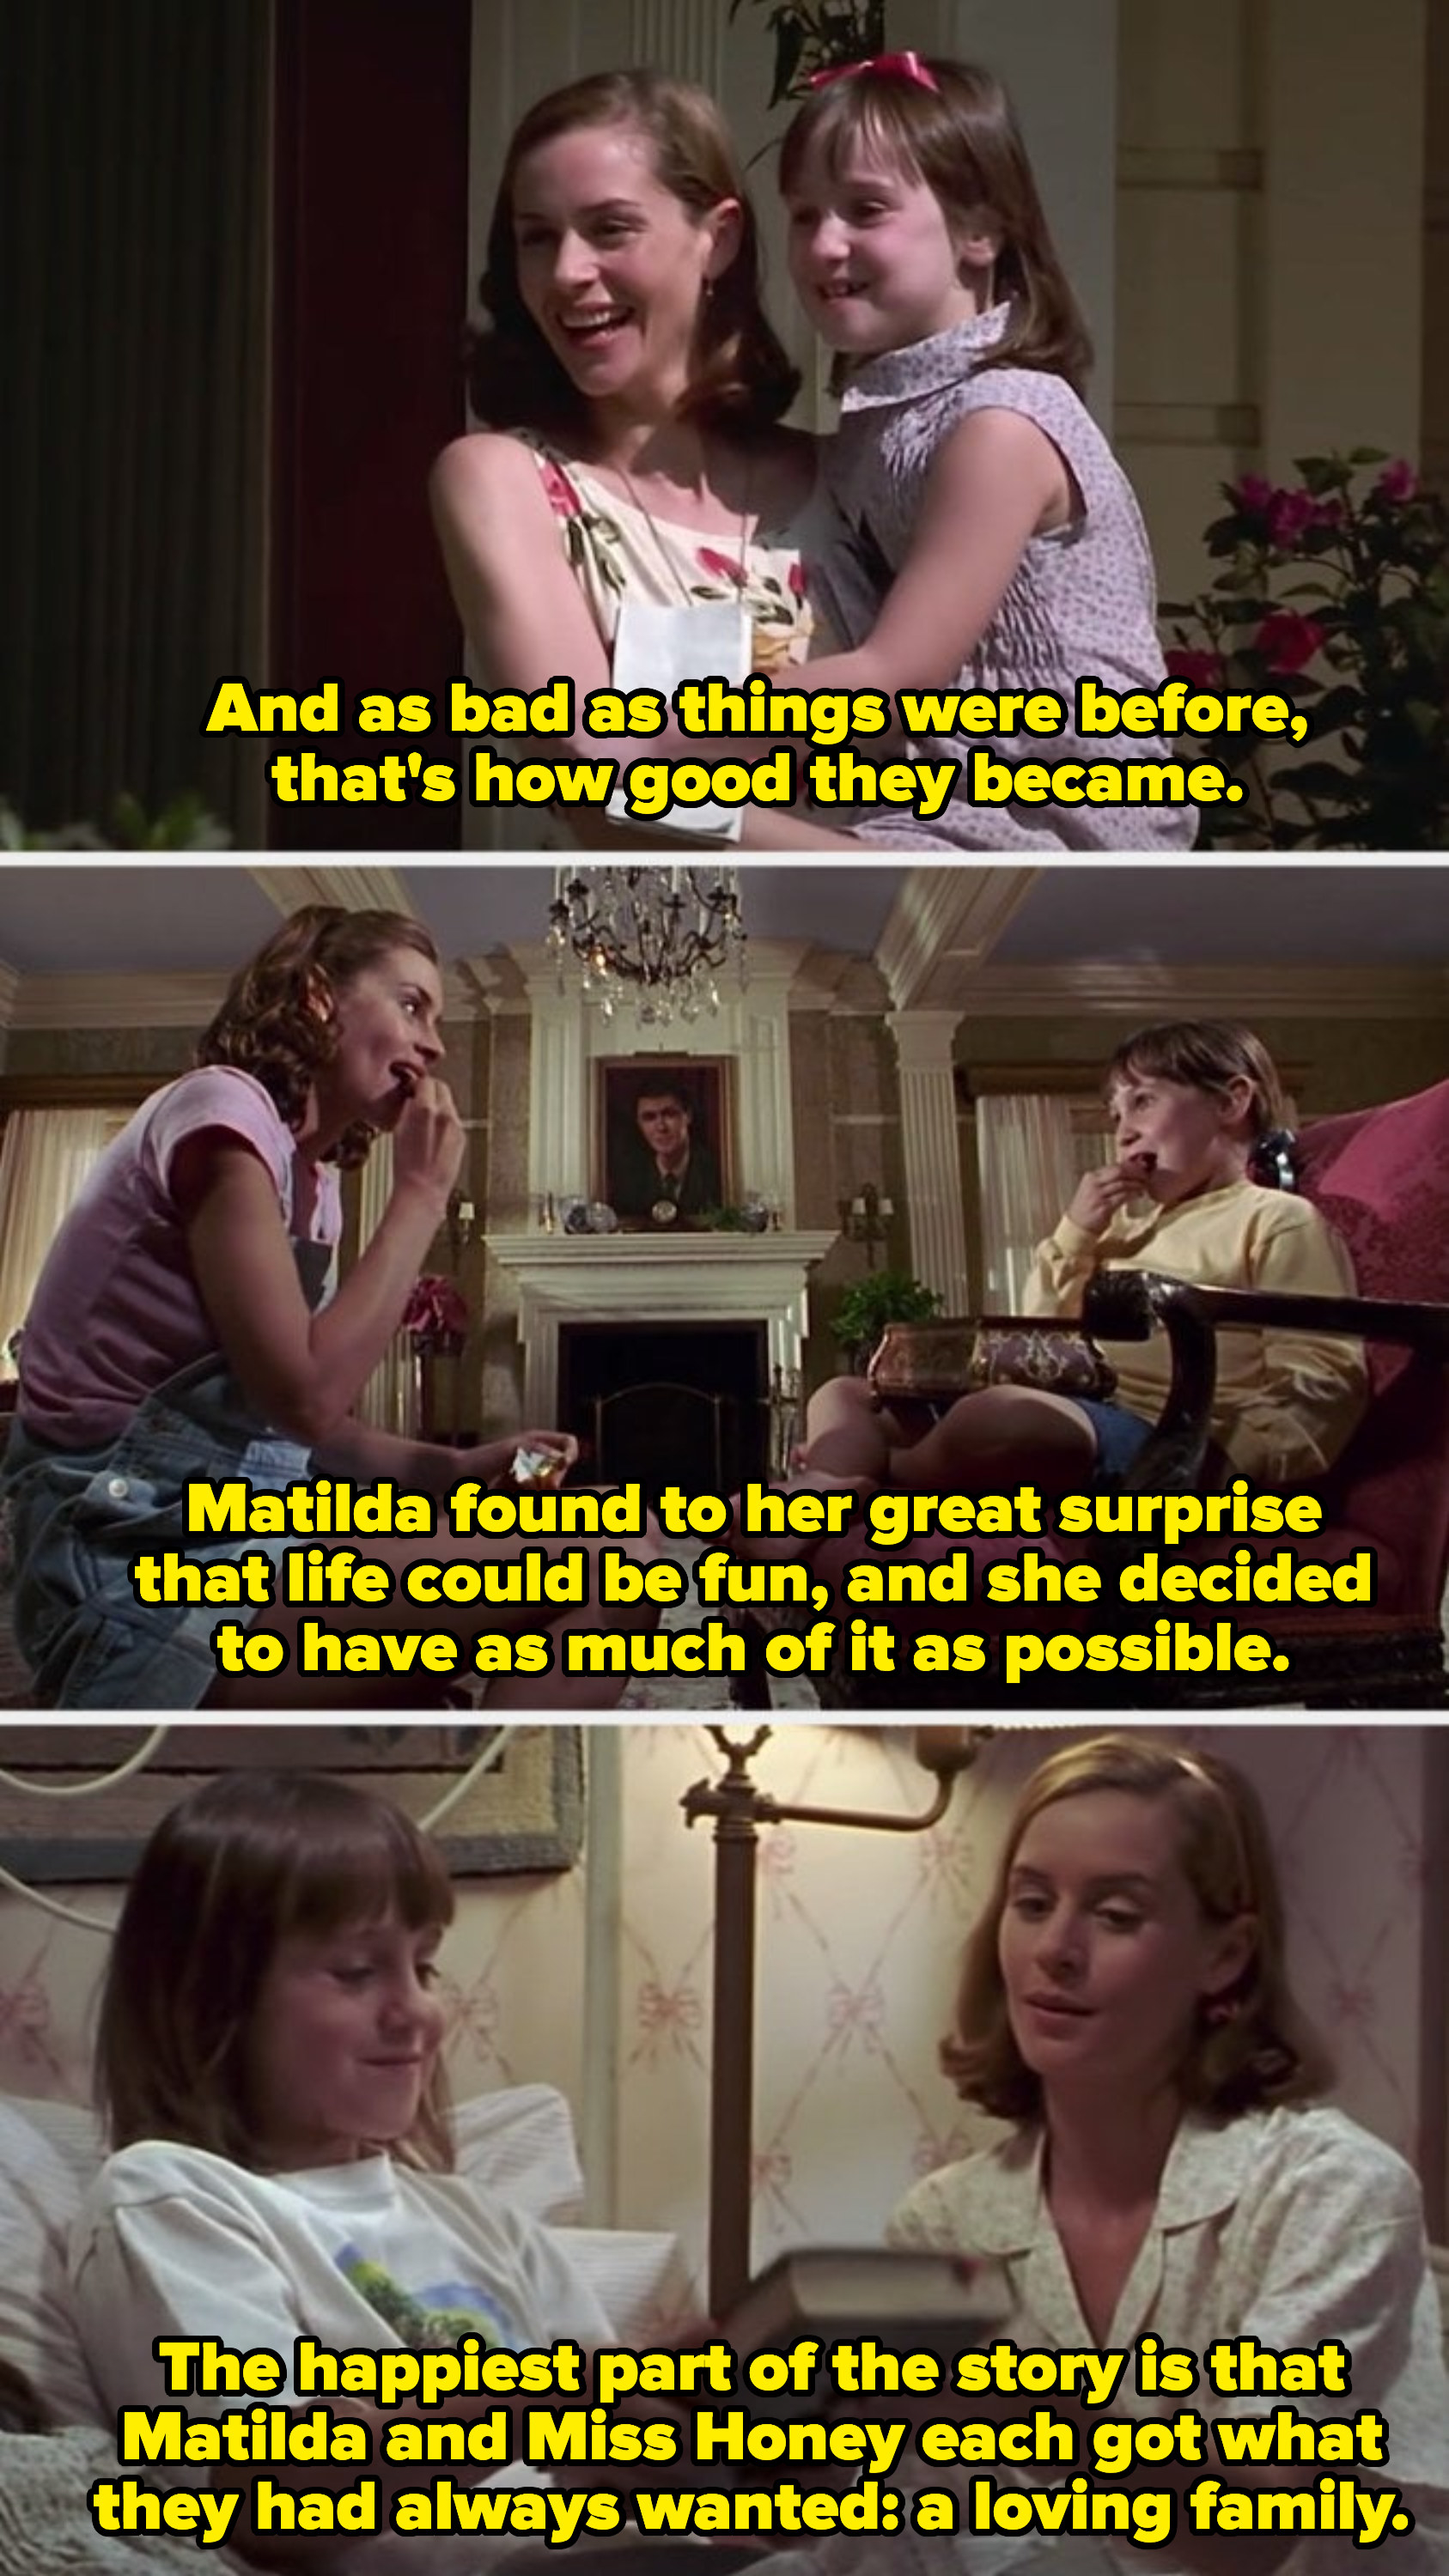 """The ending montage of Miss Honey and Matilda living happily ever after, with a voice over that reads: """"Matilda found to her great surprise that life could be fun, and she decided to have as much of it as possible"""""""